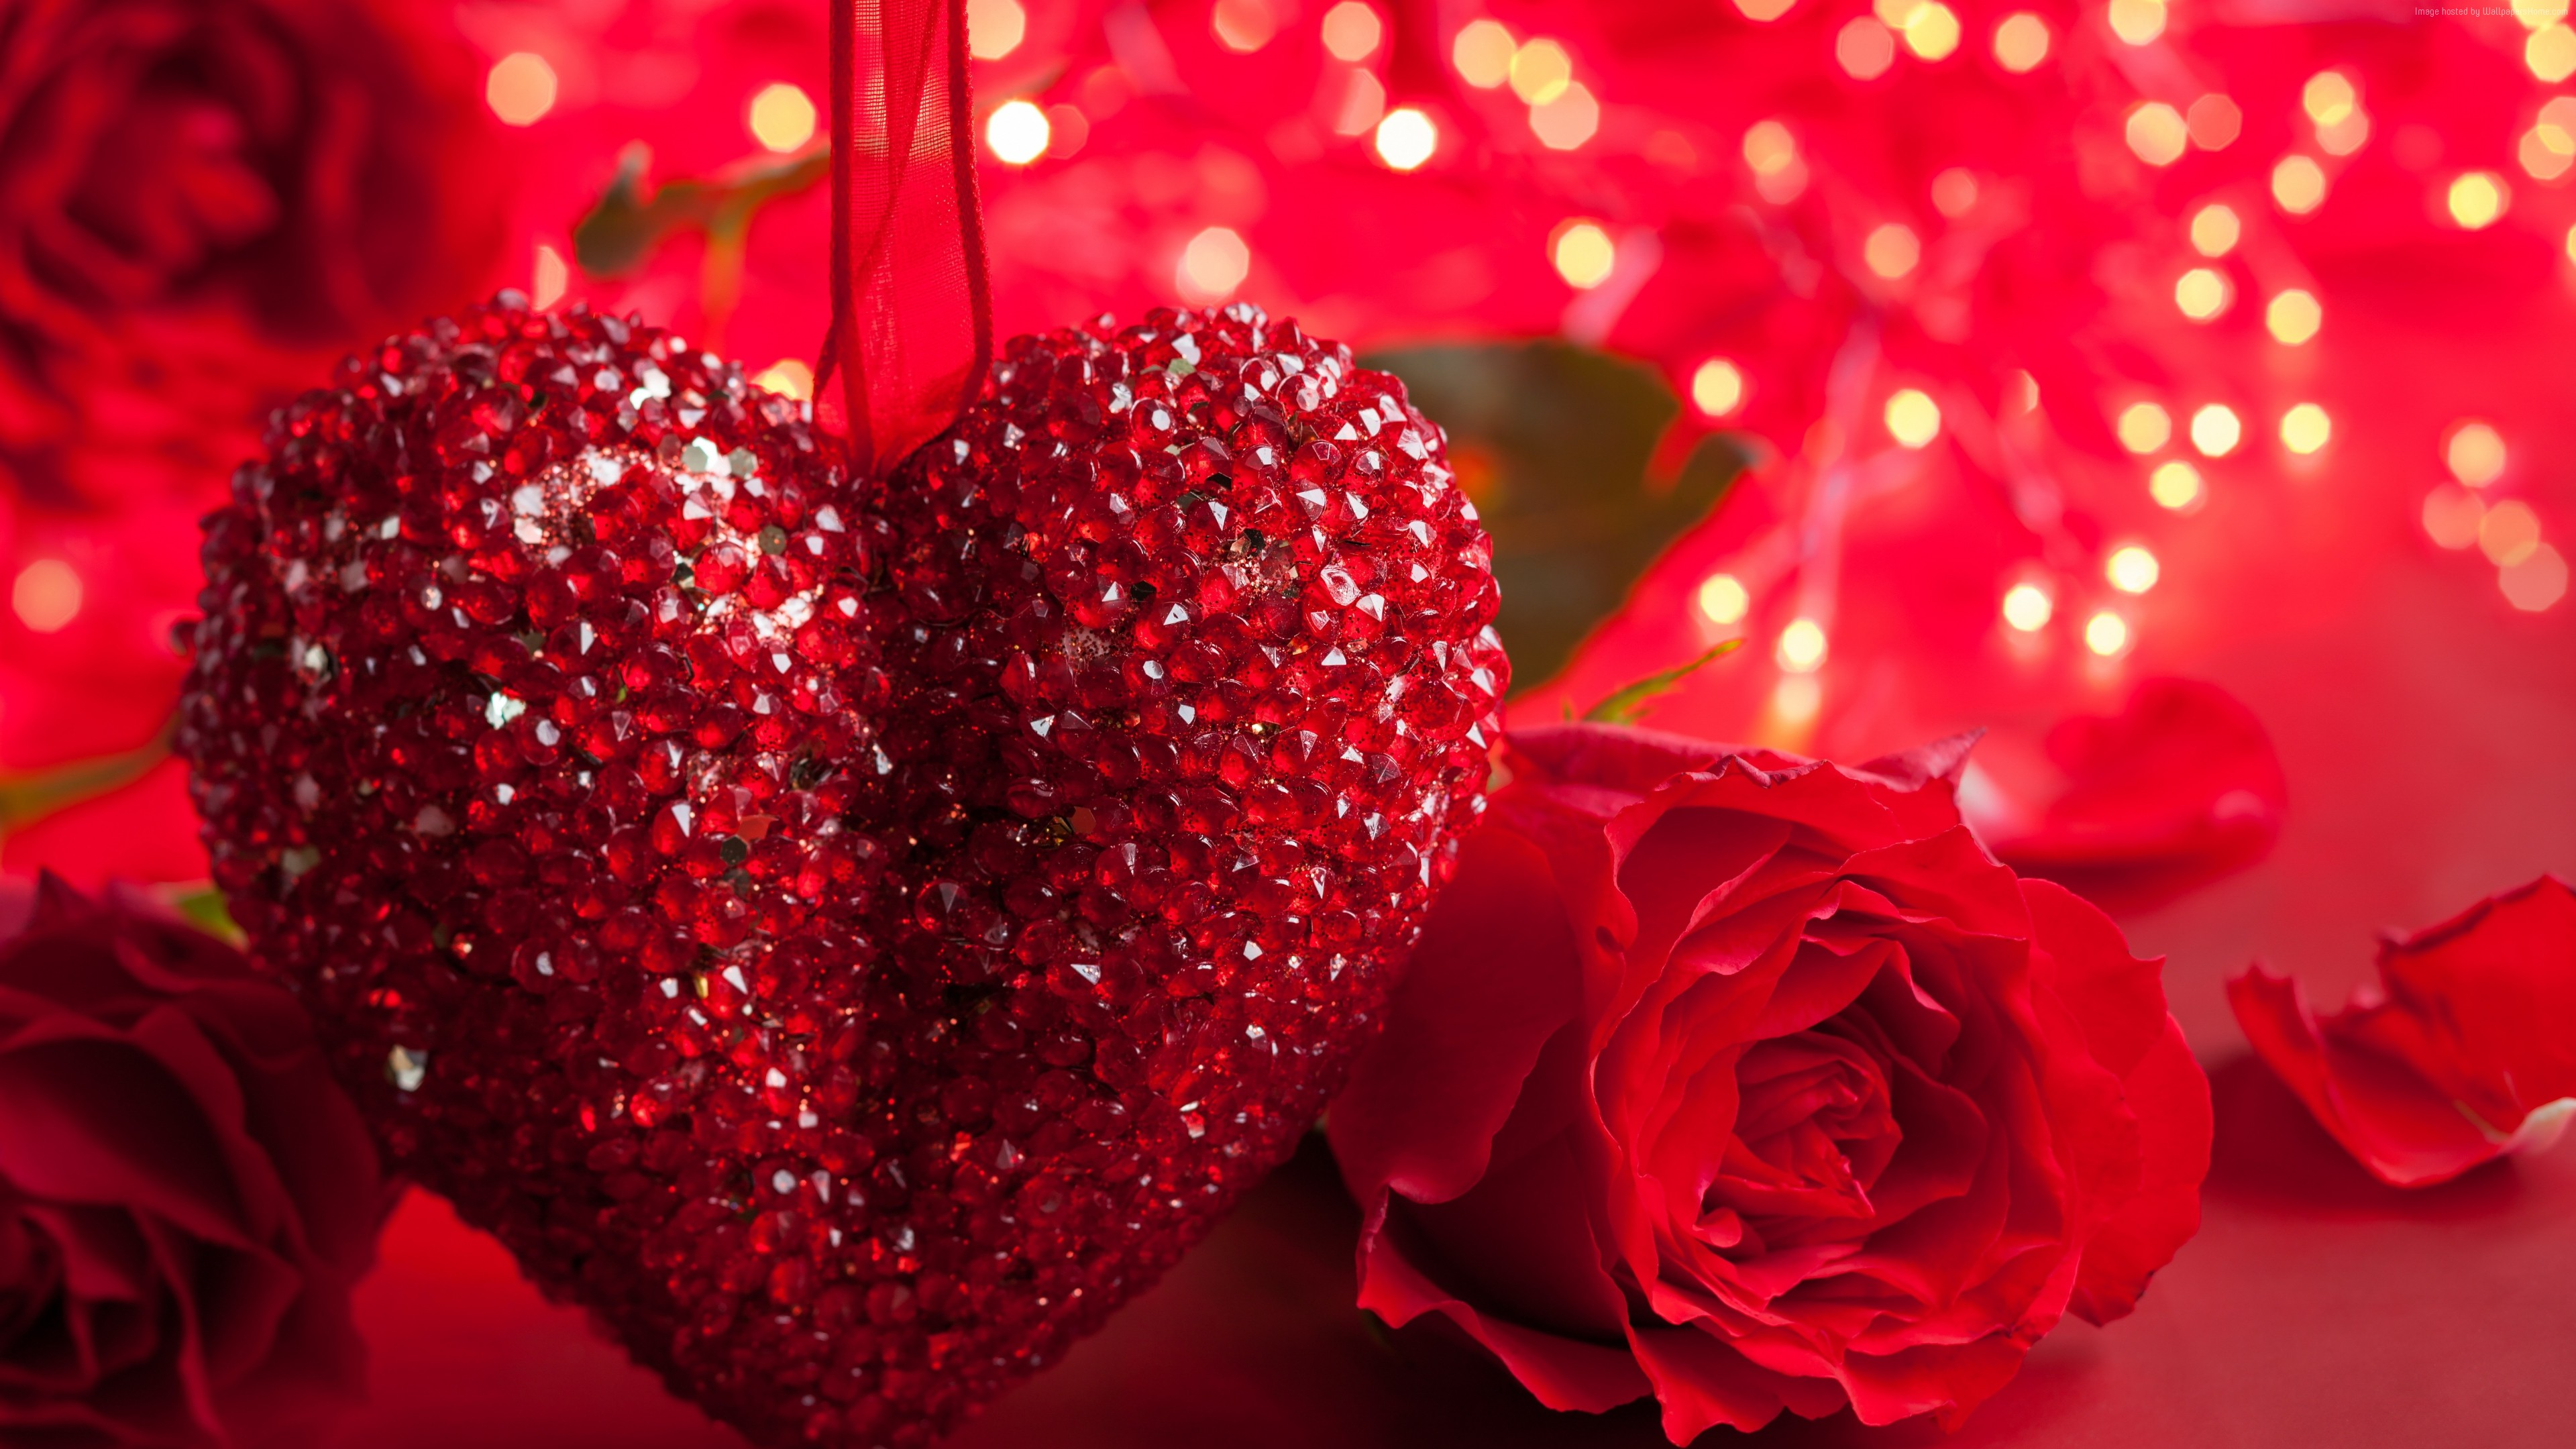 Cute 3d Cartoon Wallpapers Beautiful Big Red Neckless Heart Love And Red Roses